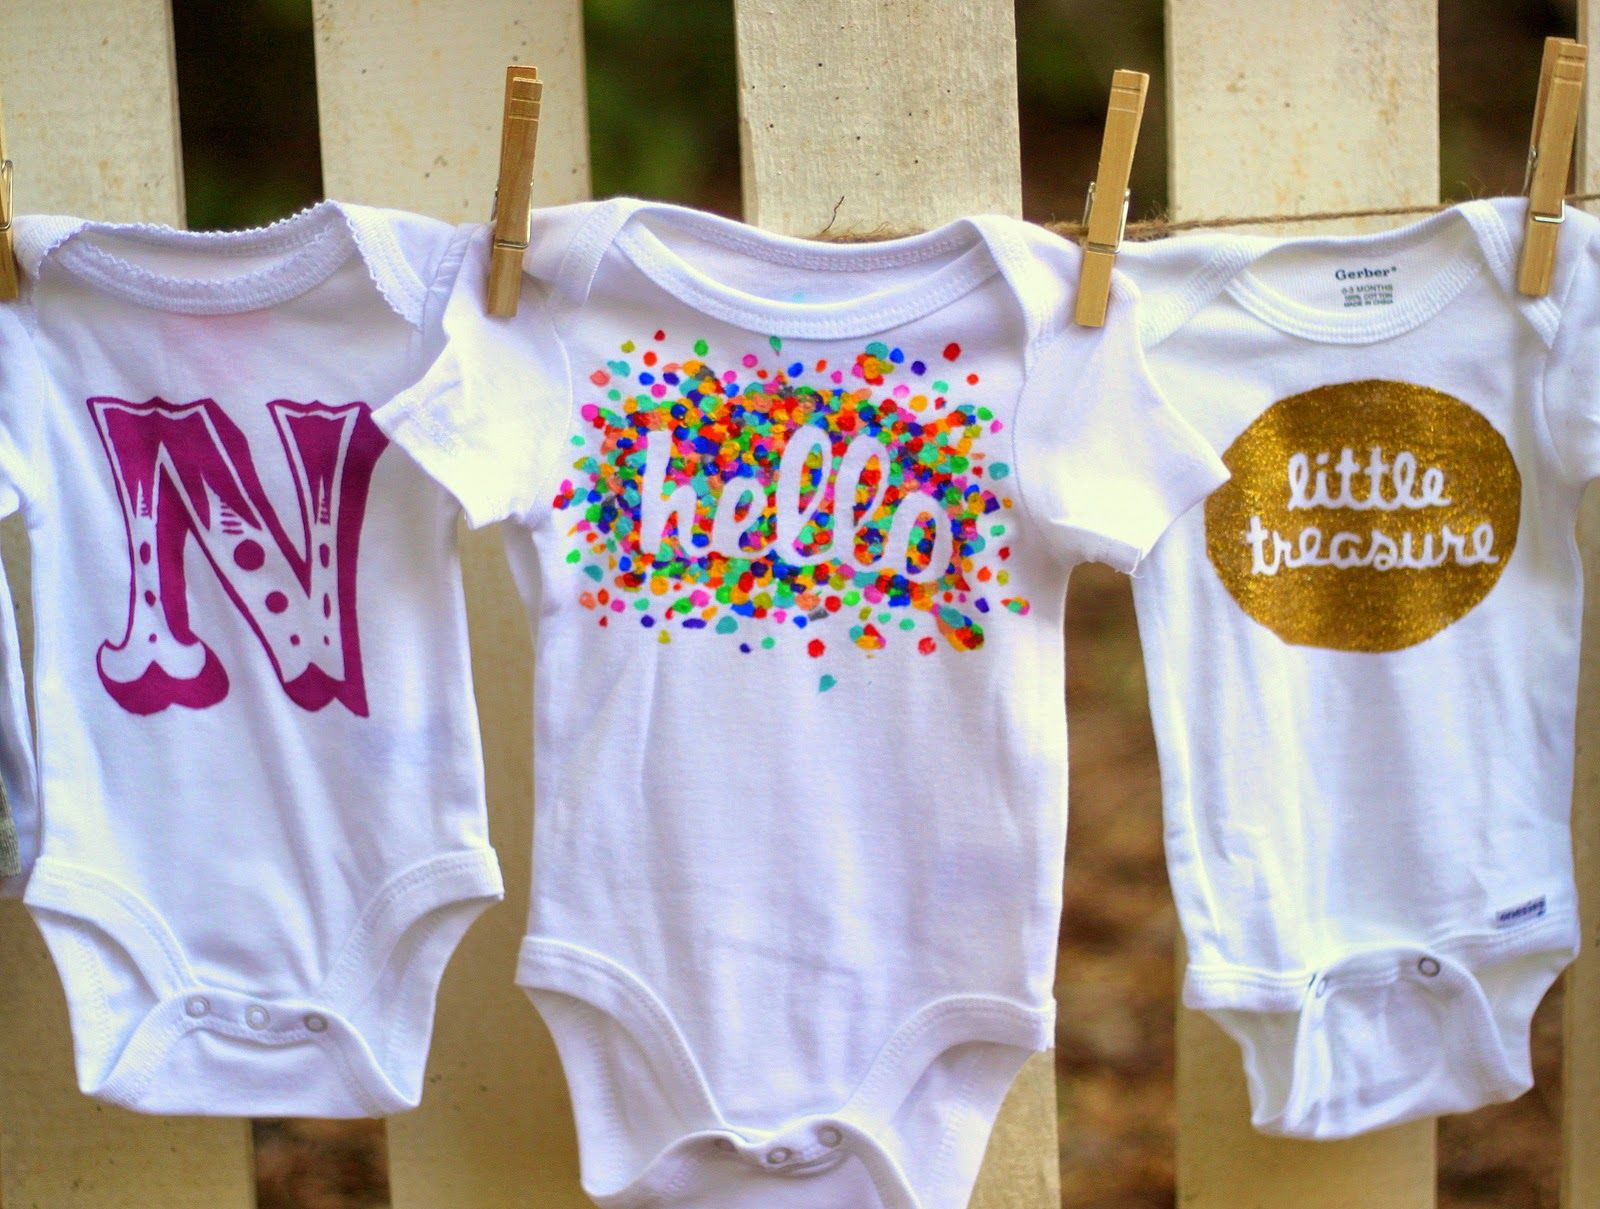 Best ideas about DIY Baby Onesie . Save or Pin 15 modern cool DIY Freezer paper stencil onesie designs Now.